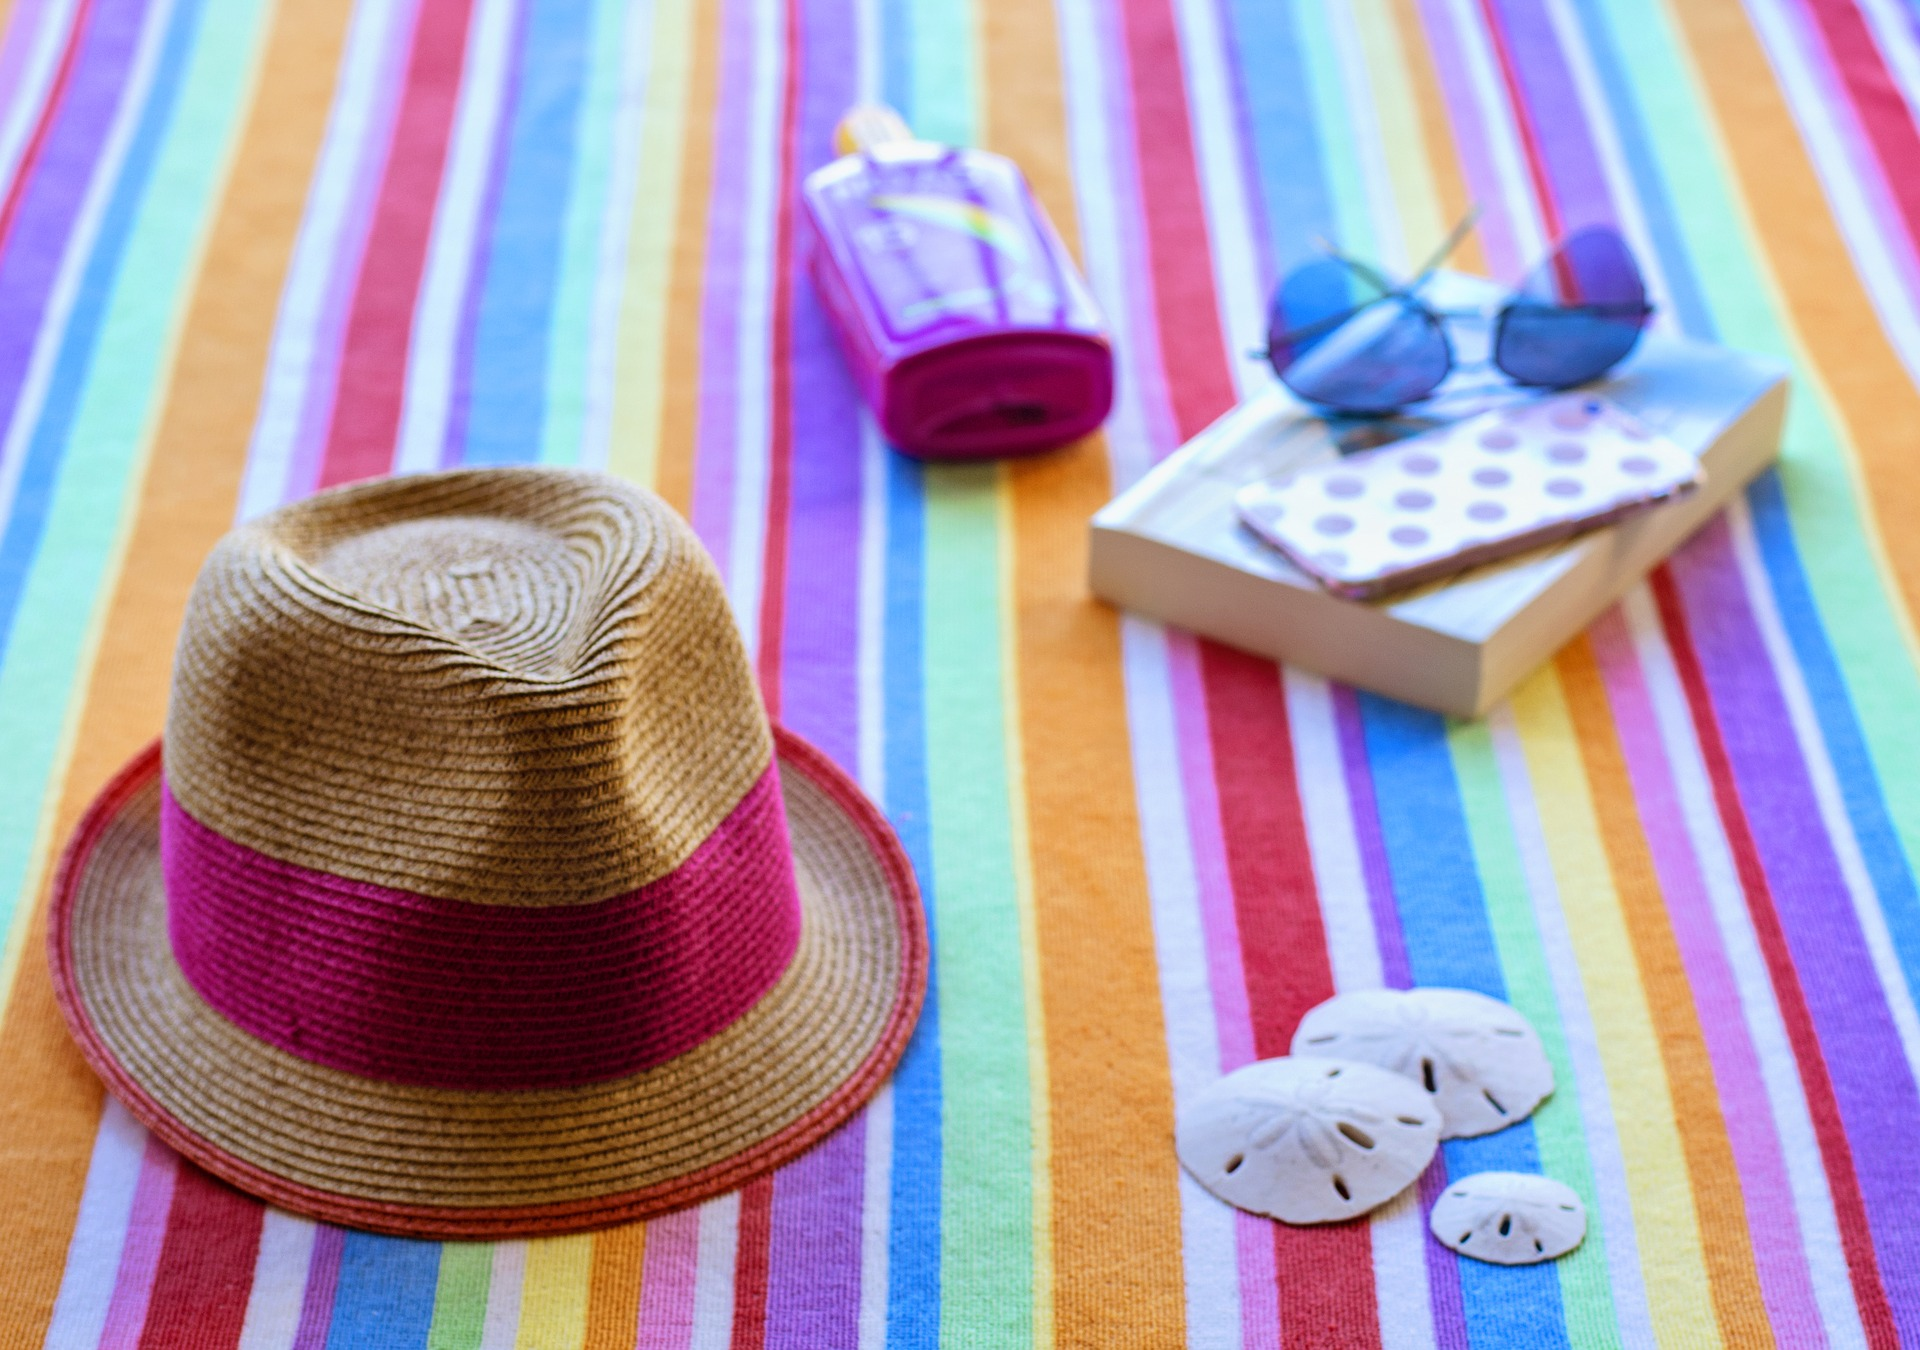 Be a trend setter and protect your face, ears and neck with a hat with a wide brim. (Photo courtesy of Pixabay)